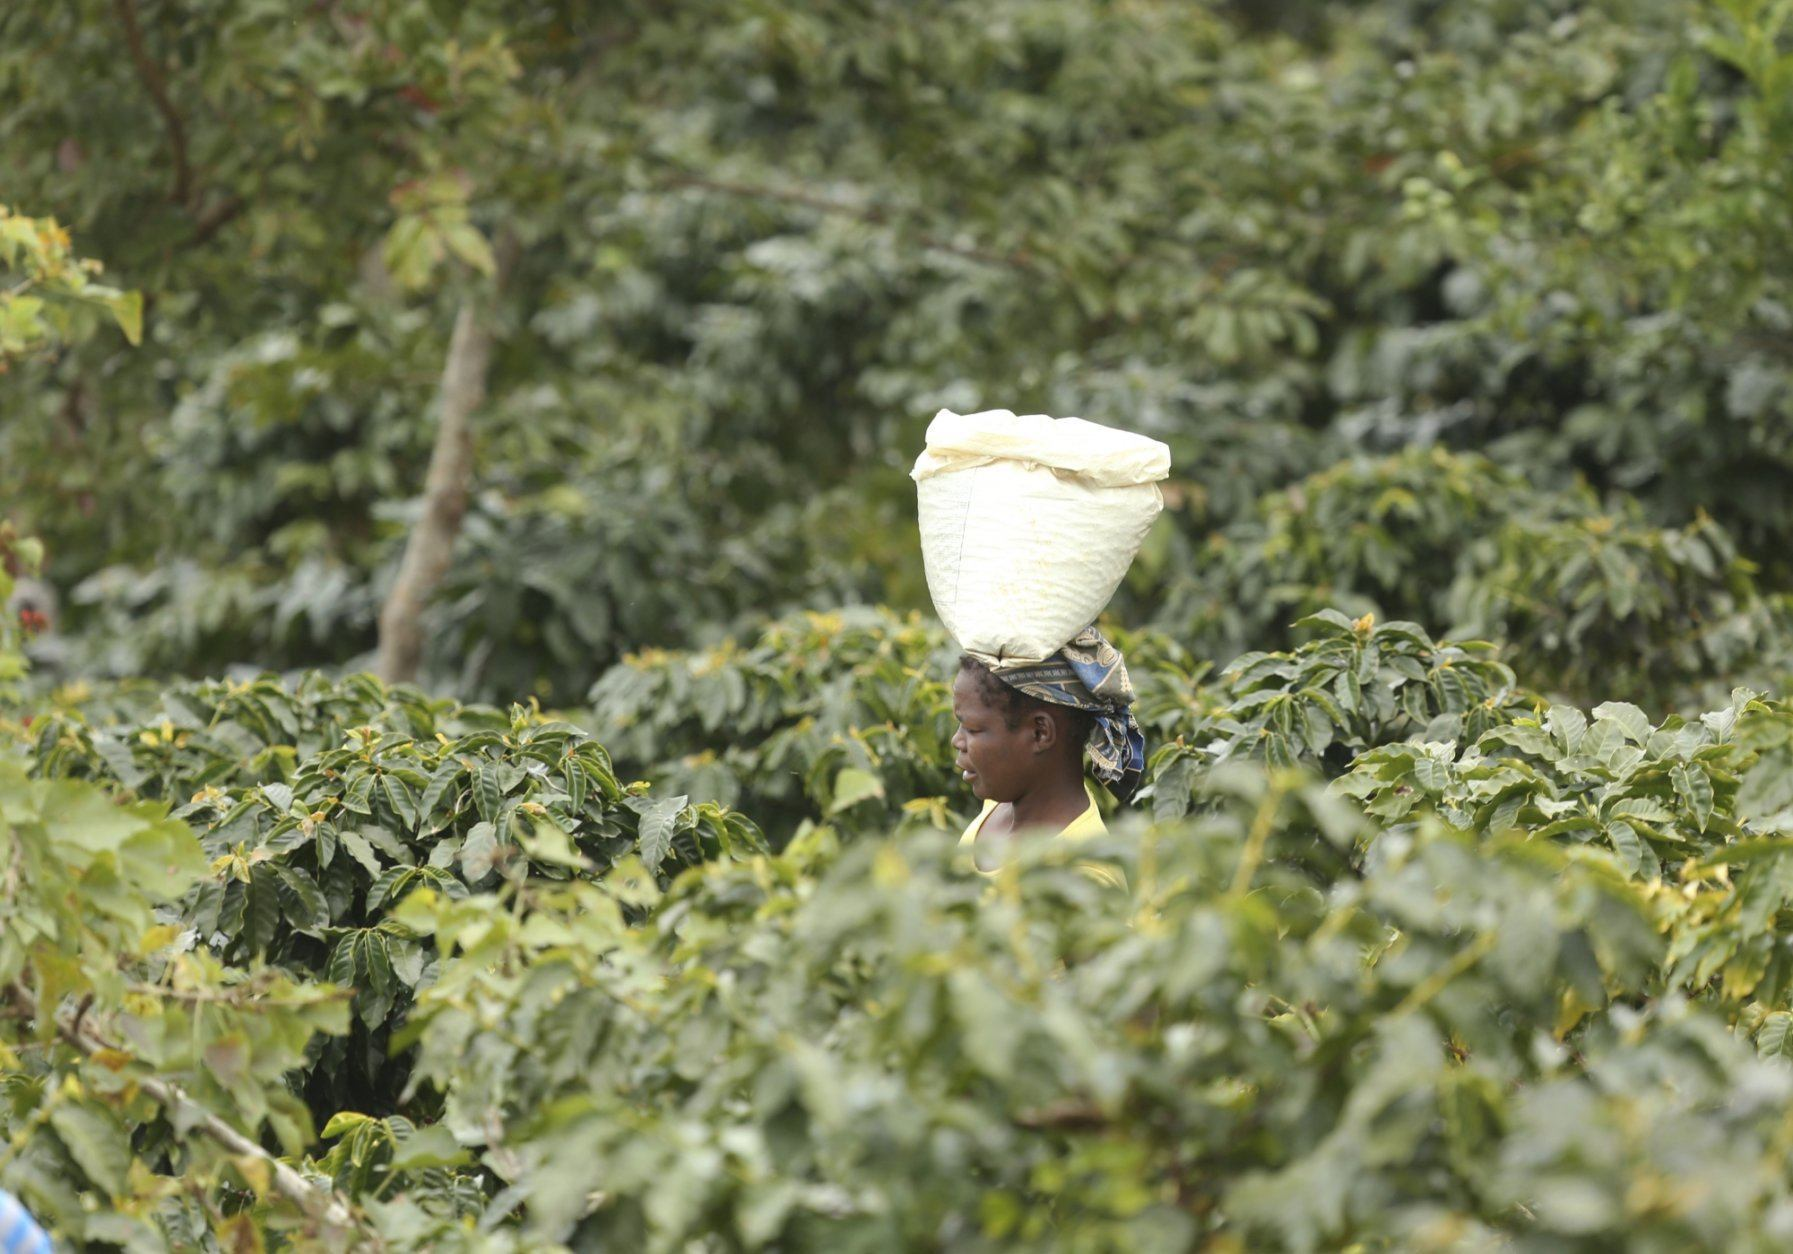 A woman carries harvested coffee beans in a coffee plantation in Mount Gorongosa, Mozambique in this Sunday, Aug. 3, 2019 photo. On the slopes of Mount Gorongosa, more than 100 farmers are producing coffee that earns them incomes while at the same time restores the rapidly eroding rainforest. With peace on the mountaintop there are plans to dramatically scale up coffee production, as part of Gorongosa National Park's innovative plan to boost the incomes of people living around the park as well as revitalizing the environment. (AP Photo/Tsvangirayi Mukwazhi)